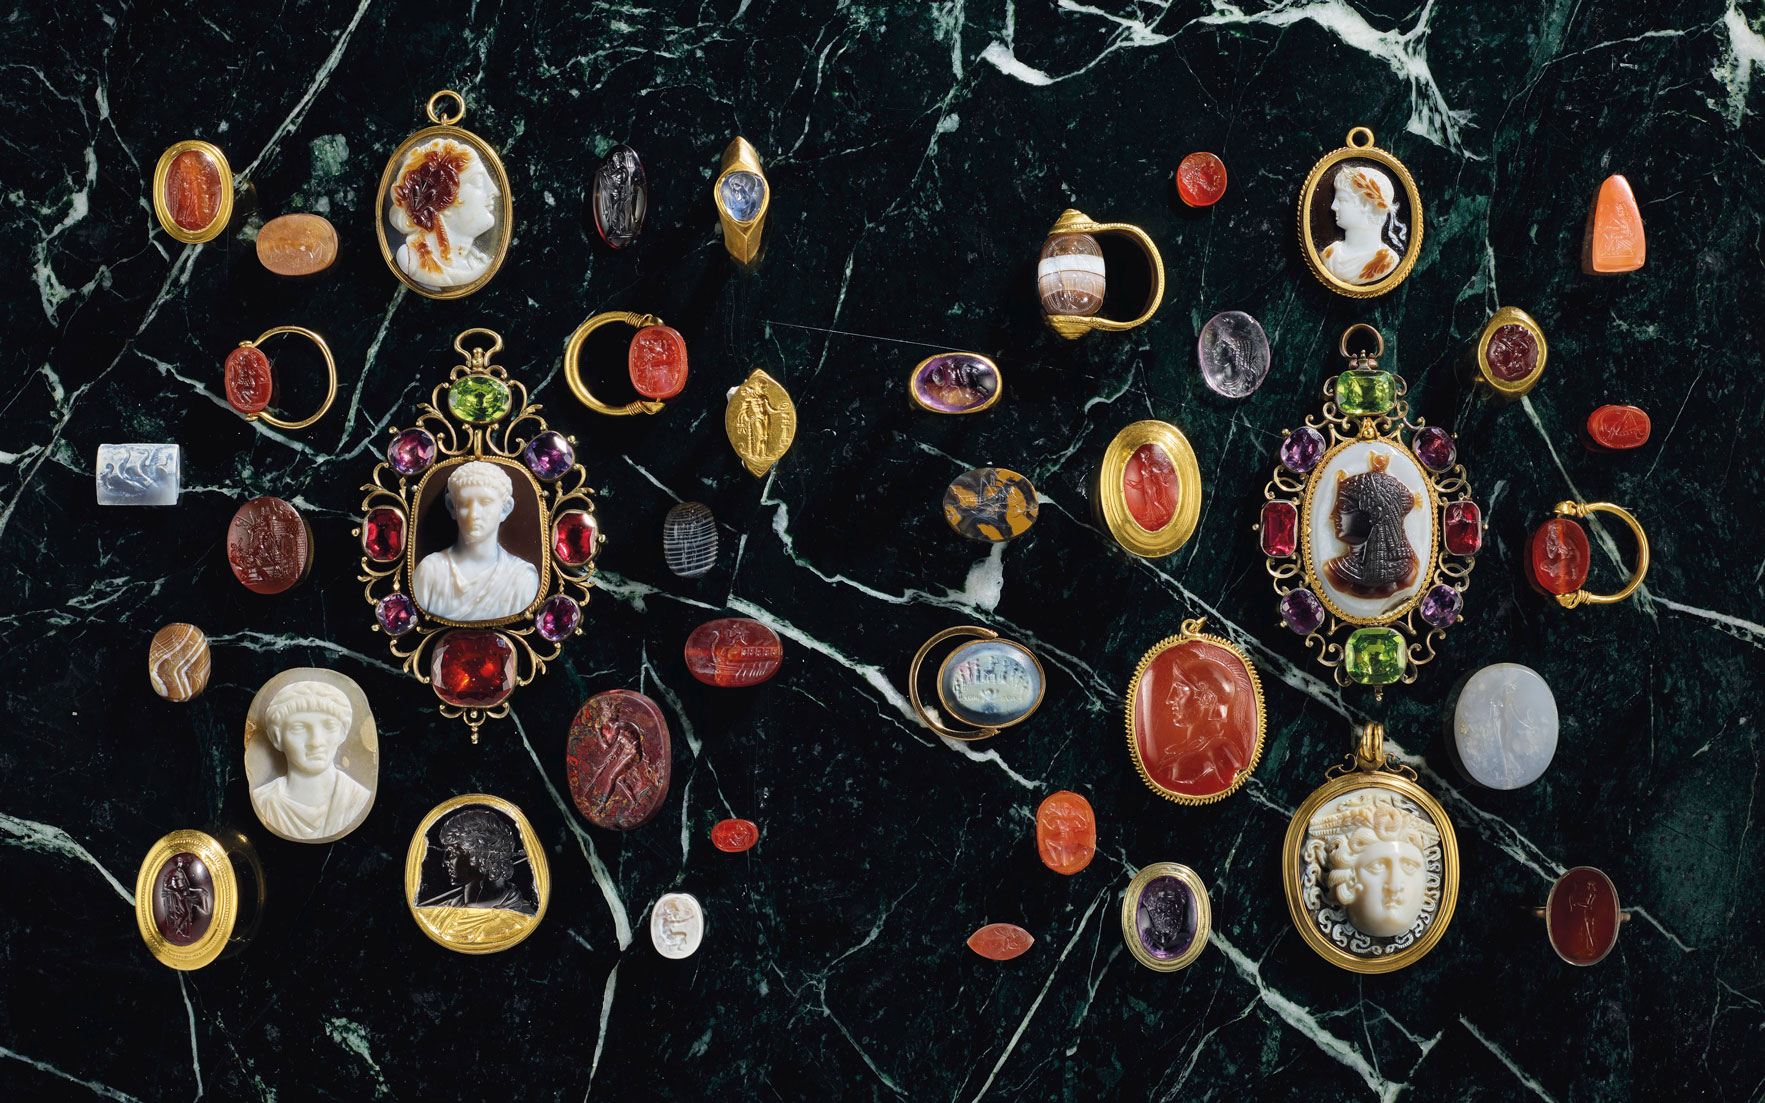 A brief history of engraved Classical gems